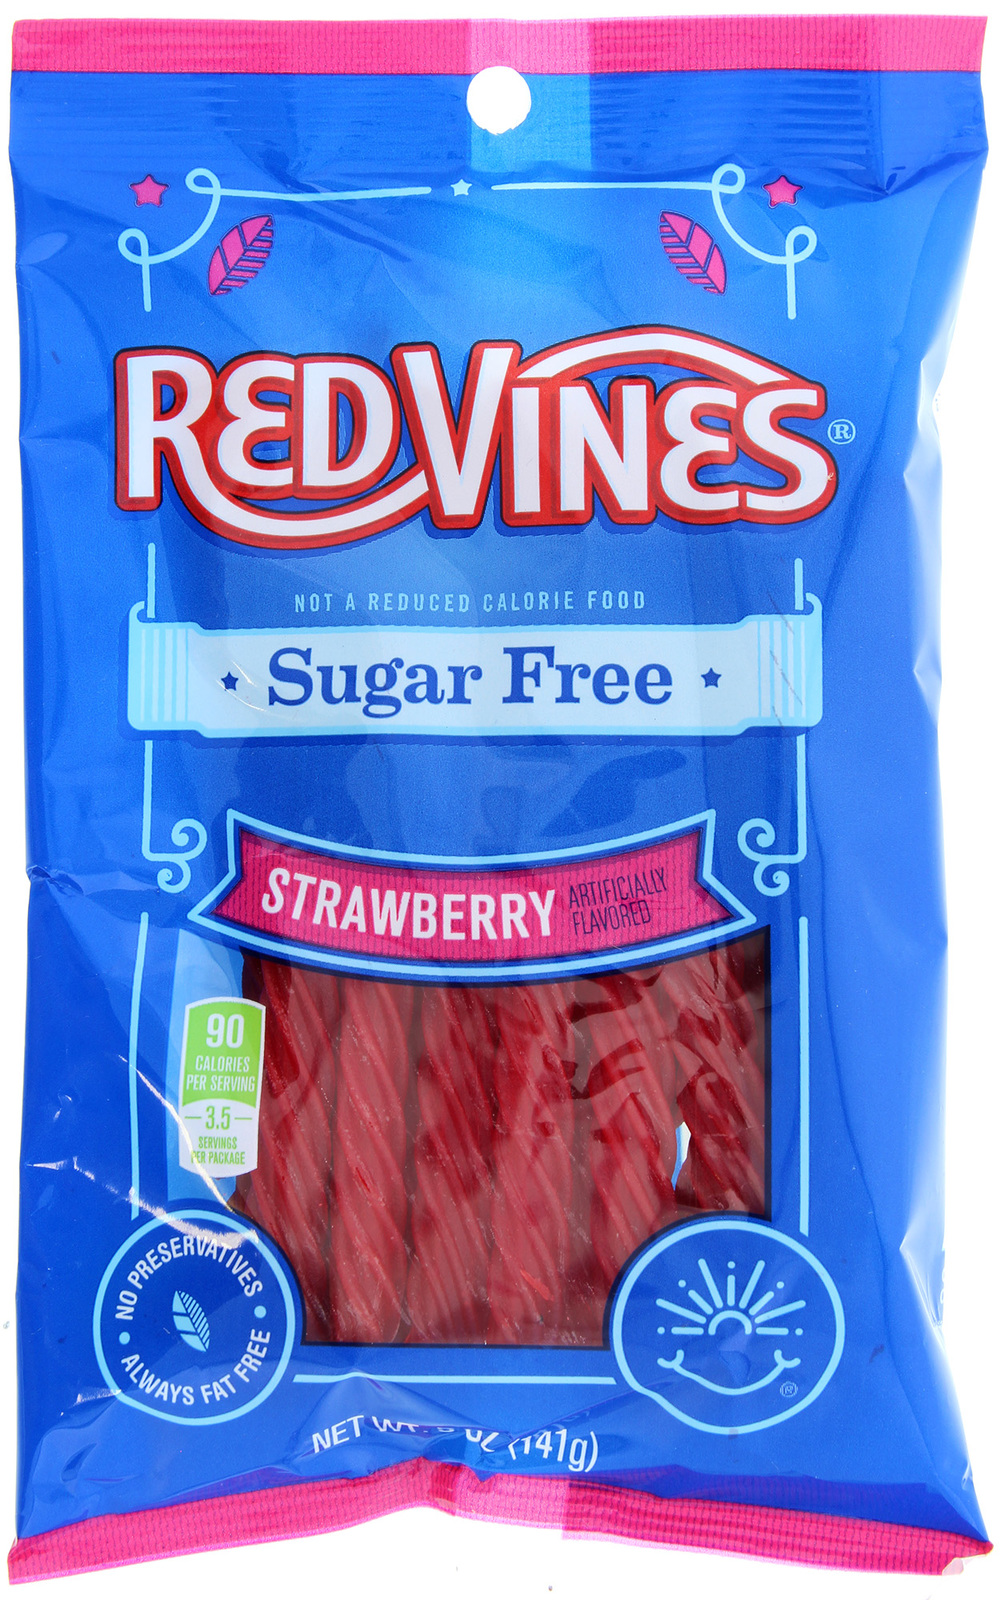 Red Vines Sugar Free Strawberry Twists (142gms) image